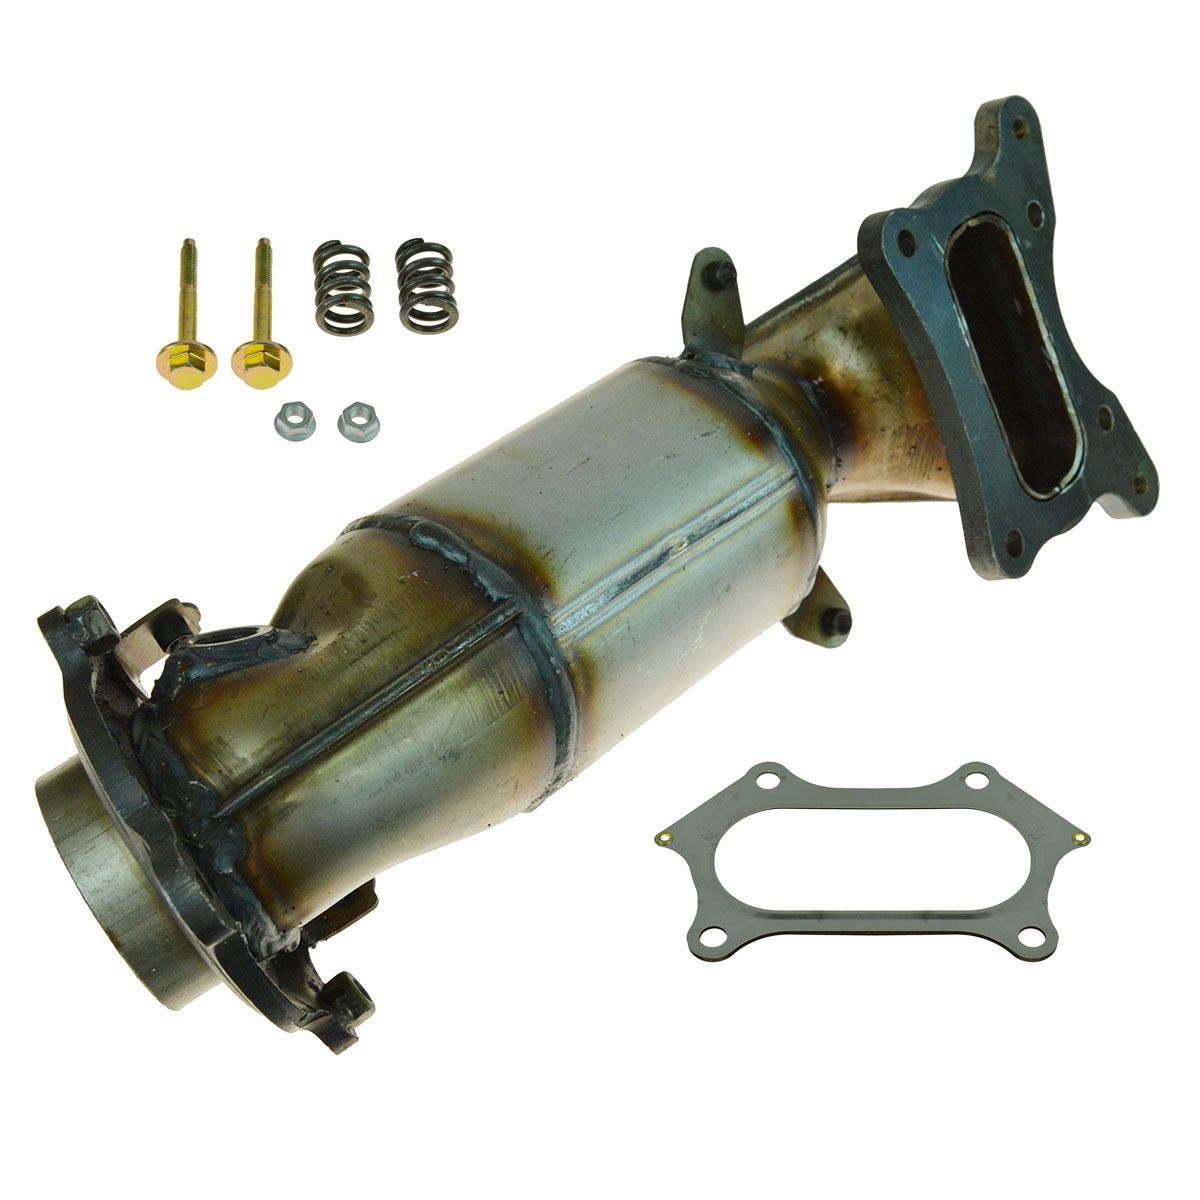 Exhaust Manifold Catalytic Converter Direct Fit For Honda